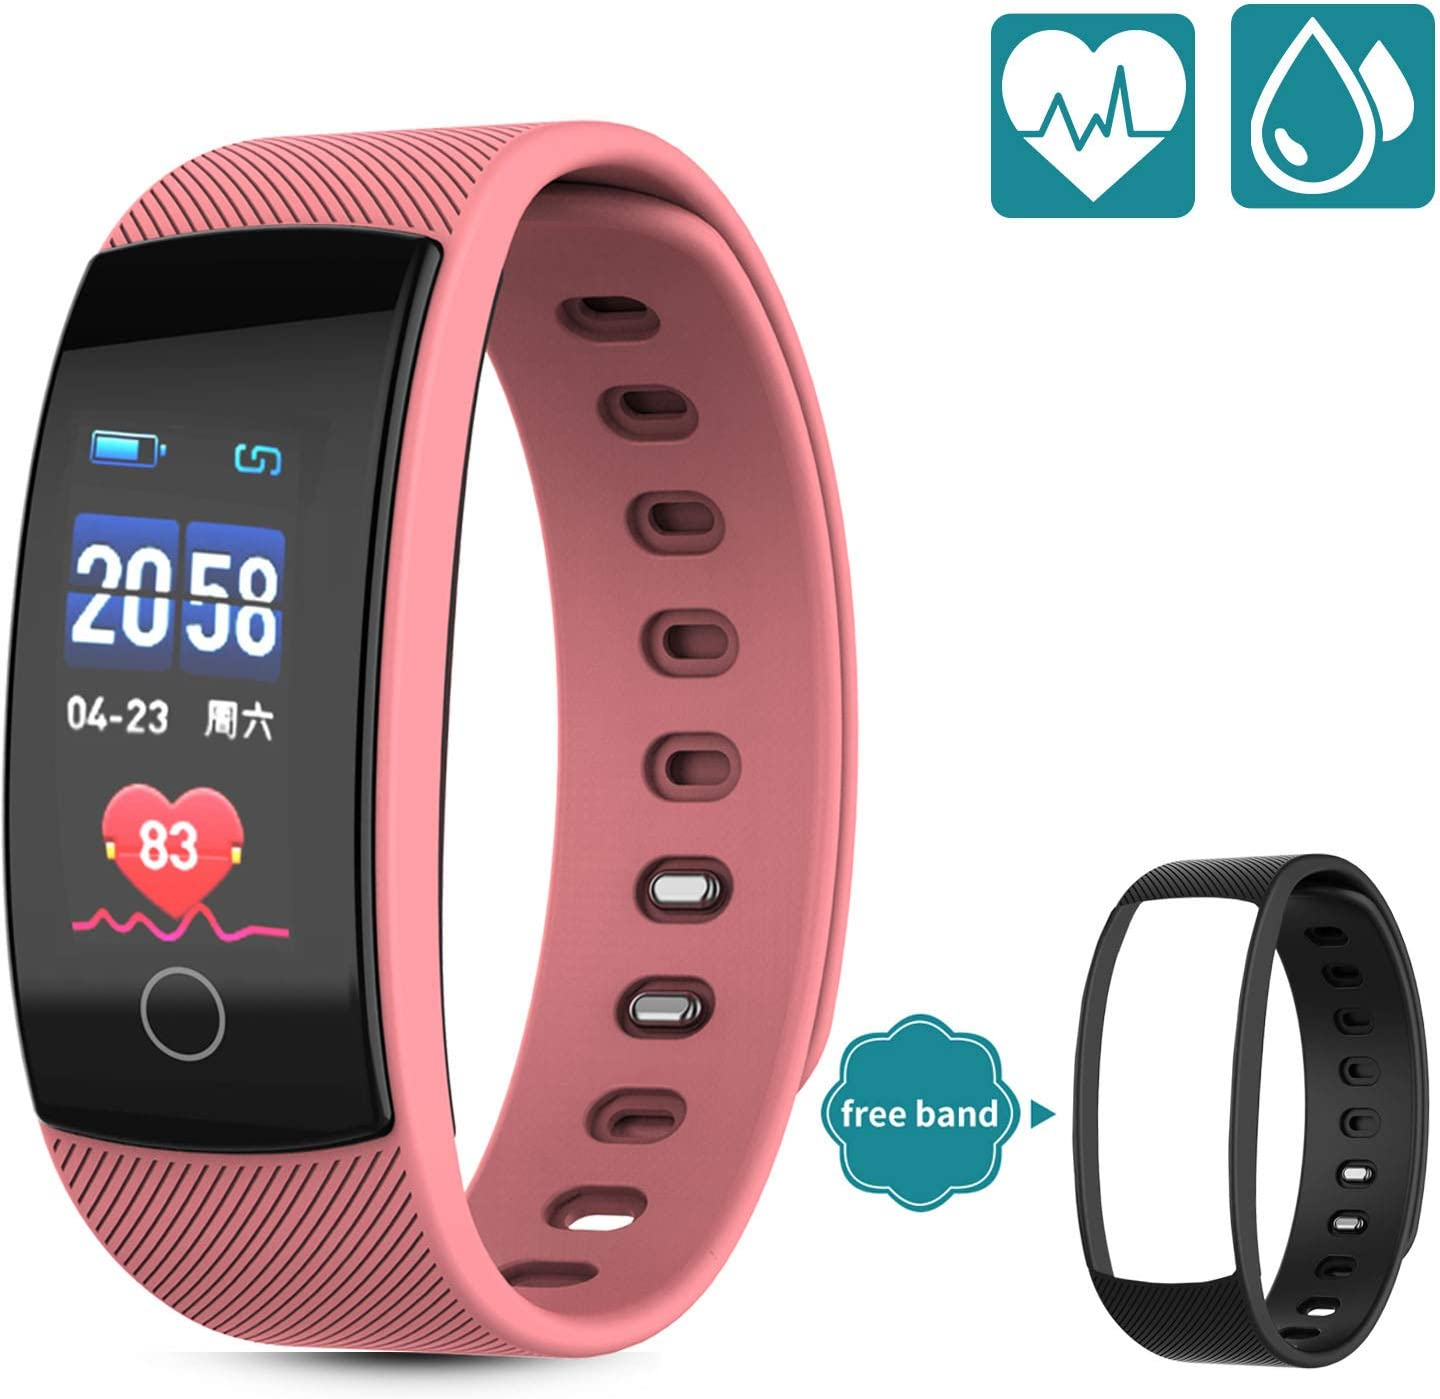 HUPPER Fitness Trackers – Heart Rate Monitor, Pedometer, Sleep Monitor and IP 67 Waterproof Activity Tracker Watch with 5 Sport Modes, Step and Calorie Counter for Kids Women and Men